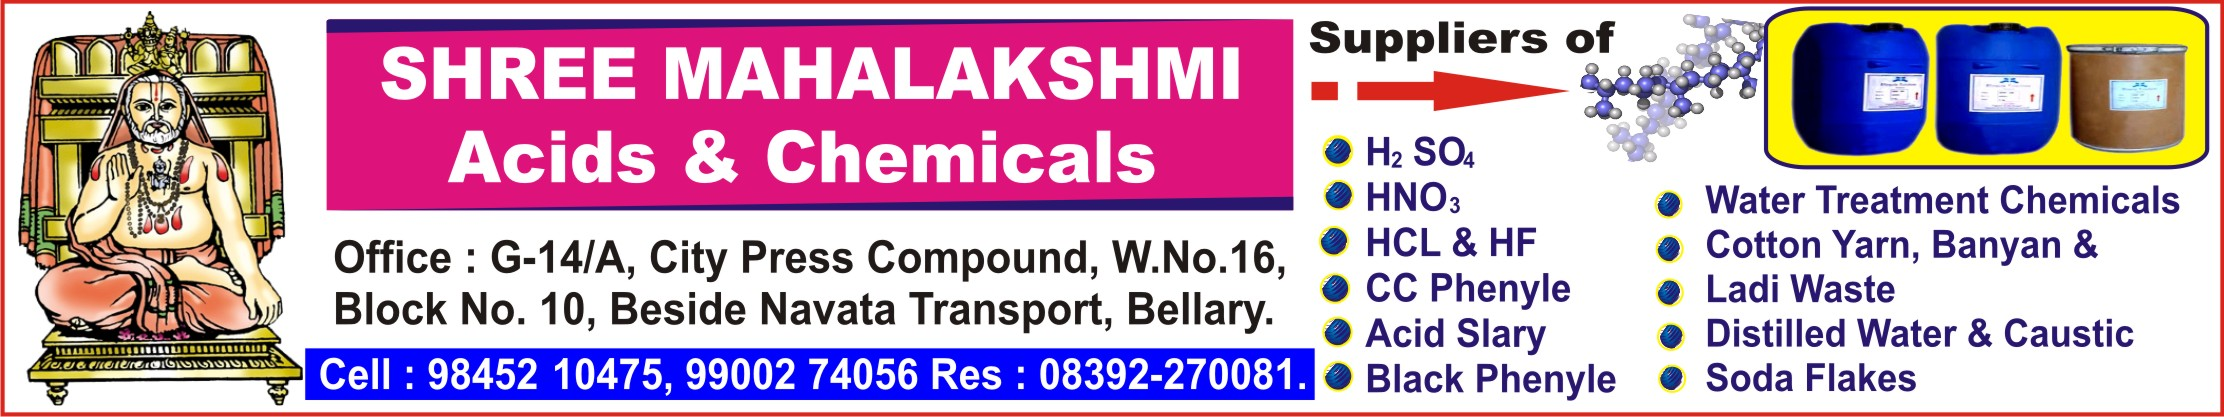 Shree Mahalakshmi Acids & Chemicals